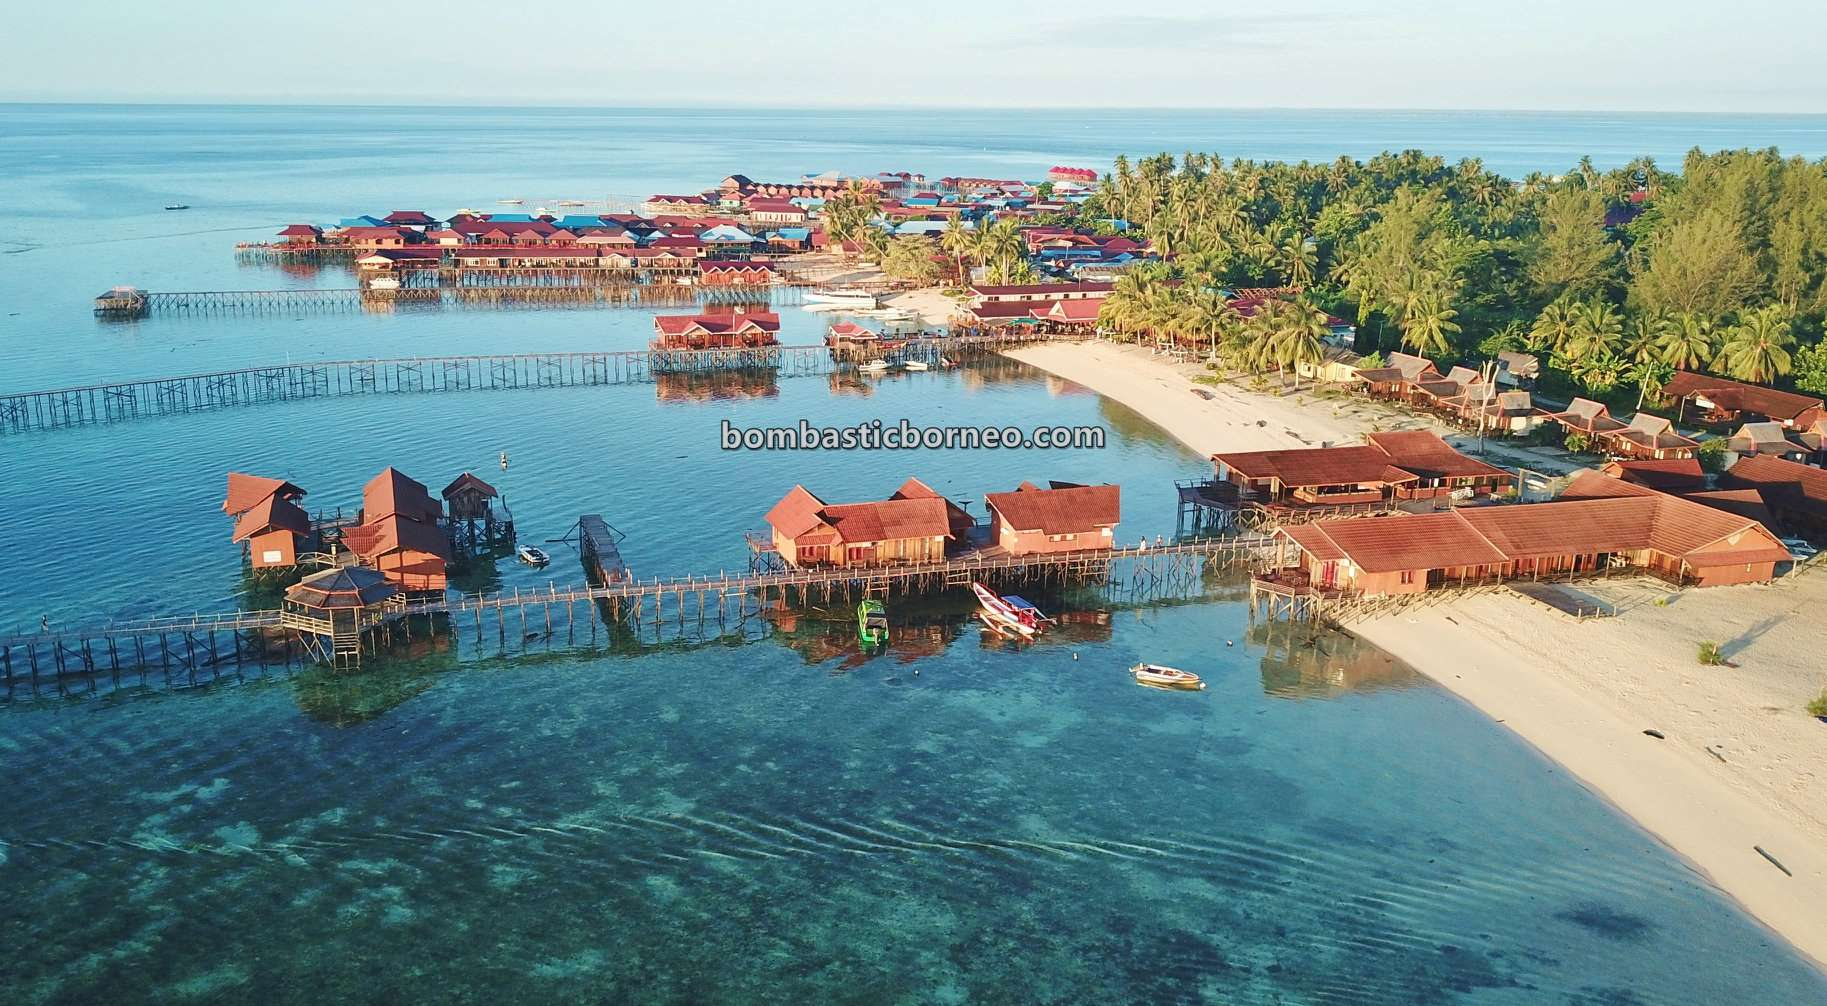 Kepulauan Derawan, Derawan Island, Bajau village, nature, hidden paradise, holiday, Berau, Kalimantan Timur, Indonesia, pasir putih, White sandy beaches, Pariwisata, tourist attraction, travel guide, Trans Borneo,